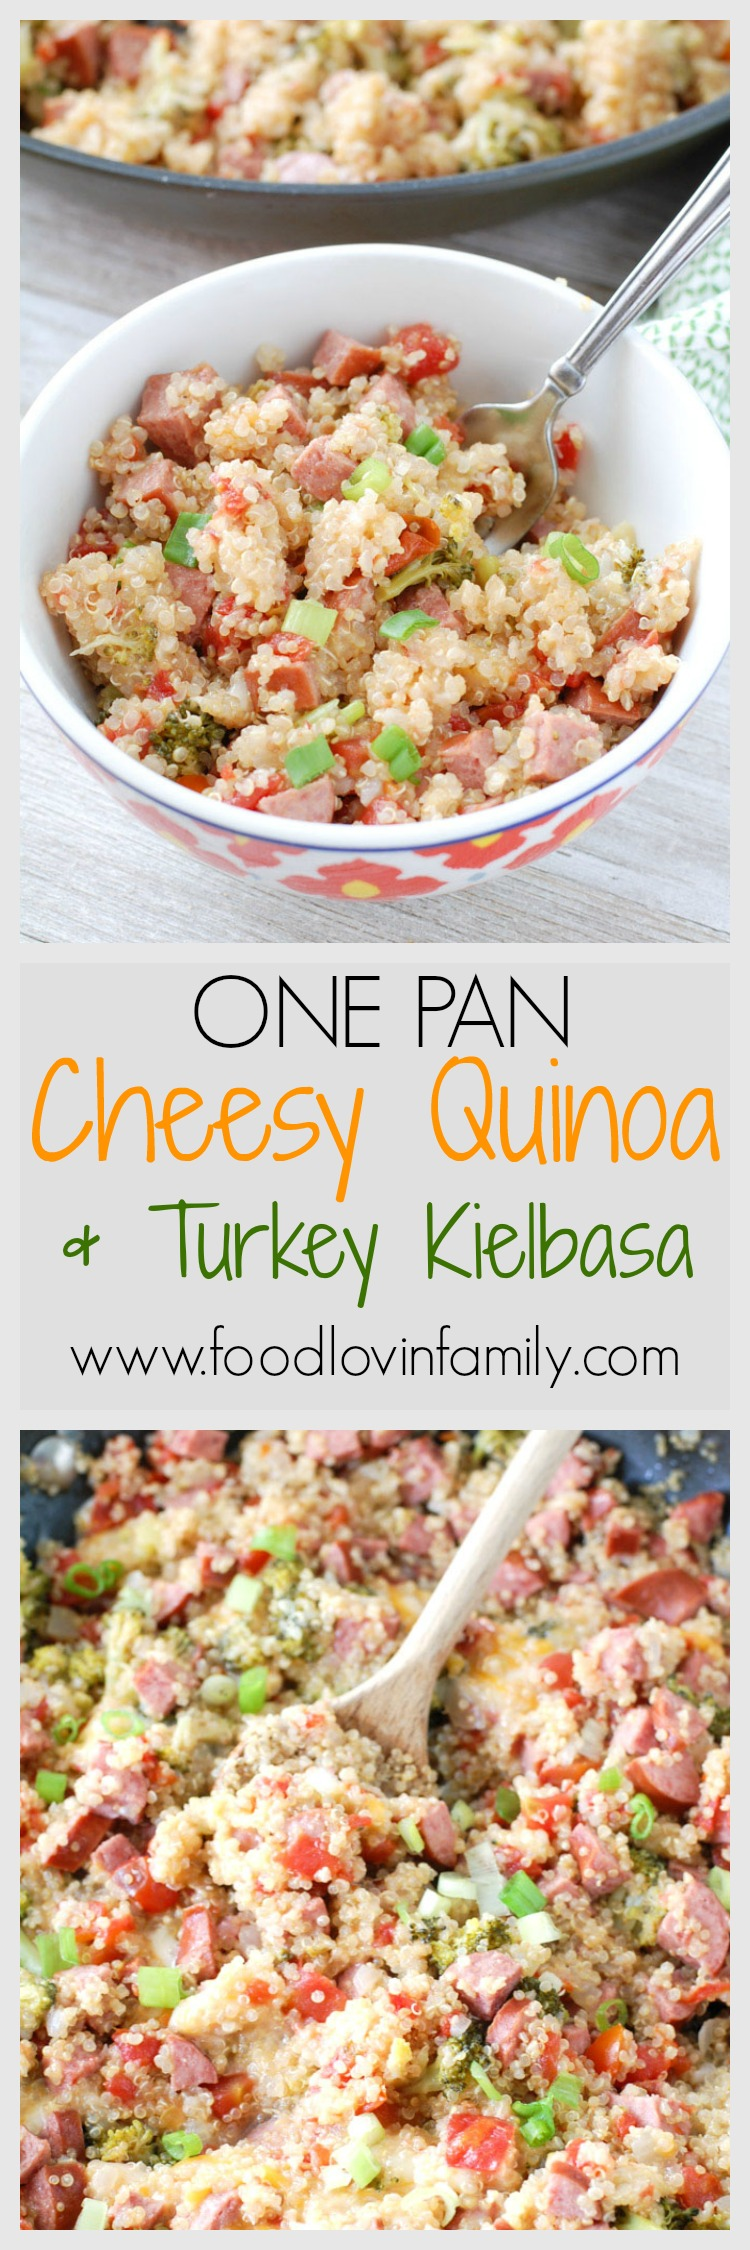 It doesn't get any easier than one pan. This dish is full of flavor with turkey kielbasa, tomatoes with green chilies, broccoli and CHEESE.